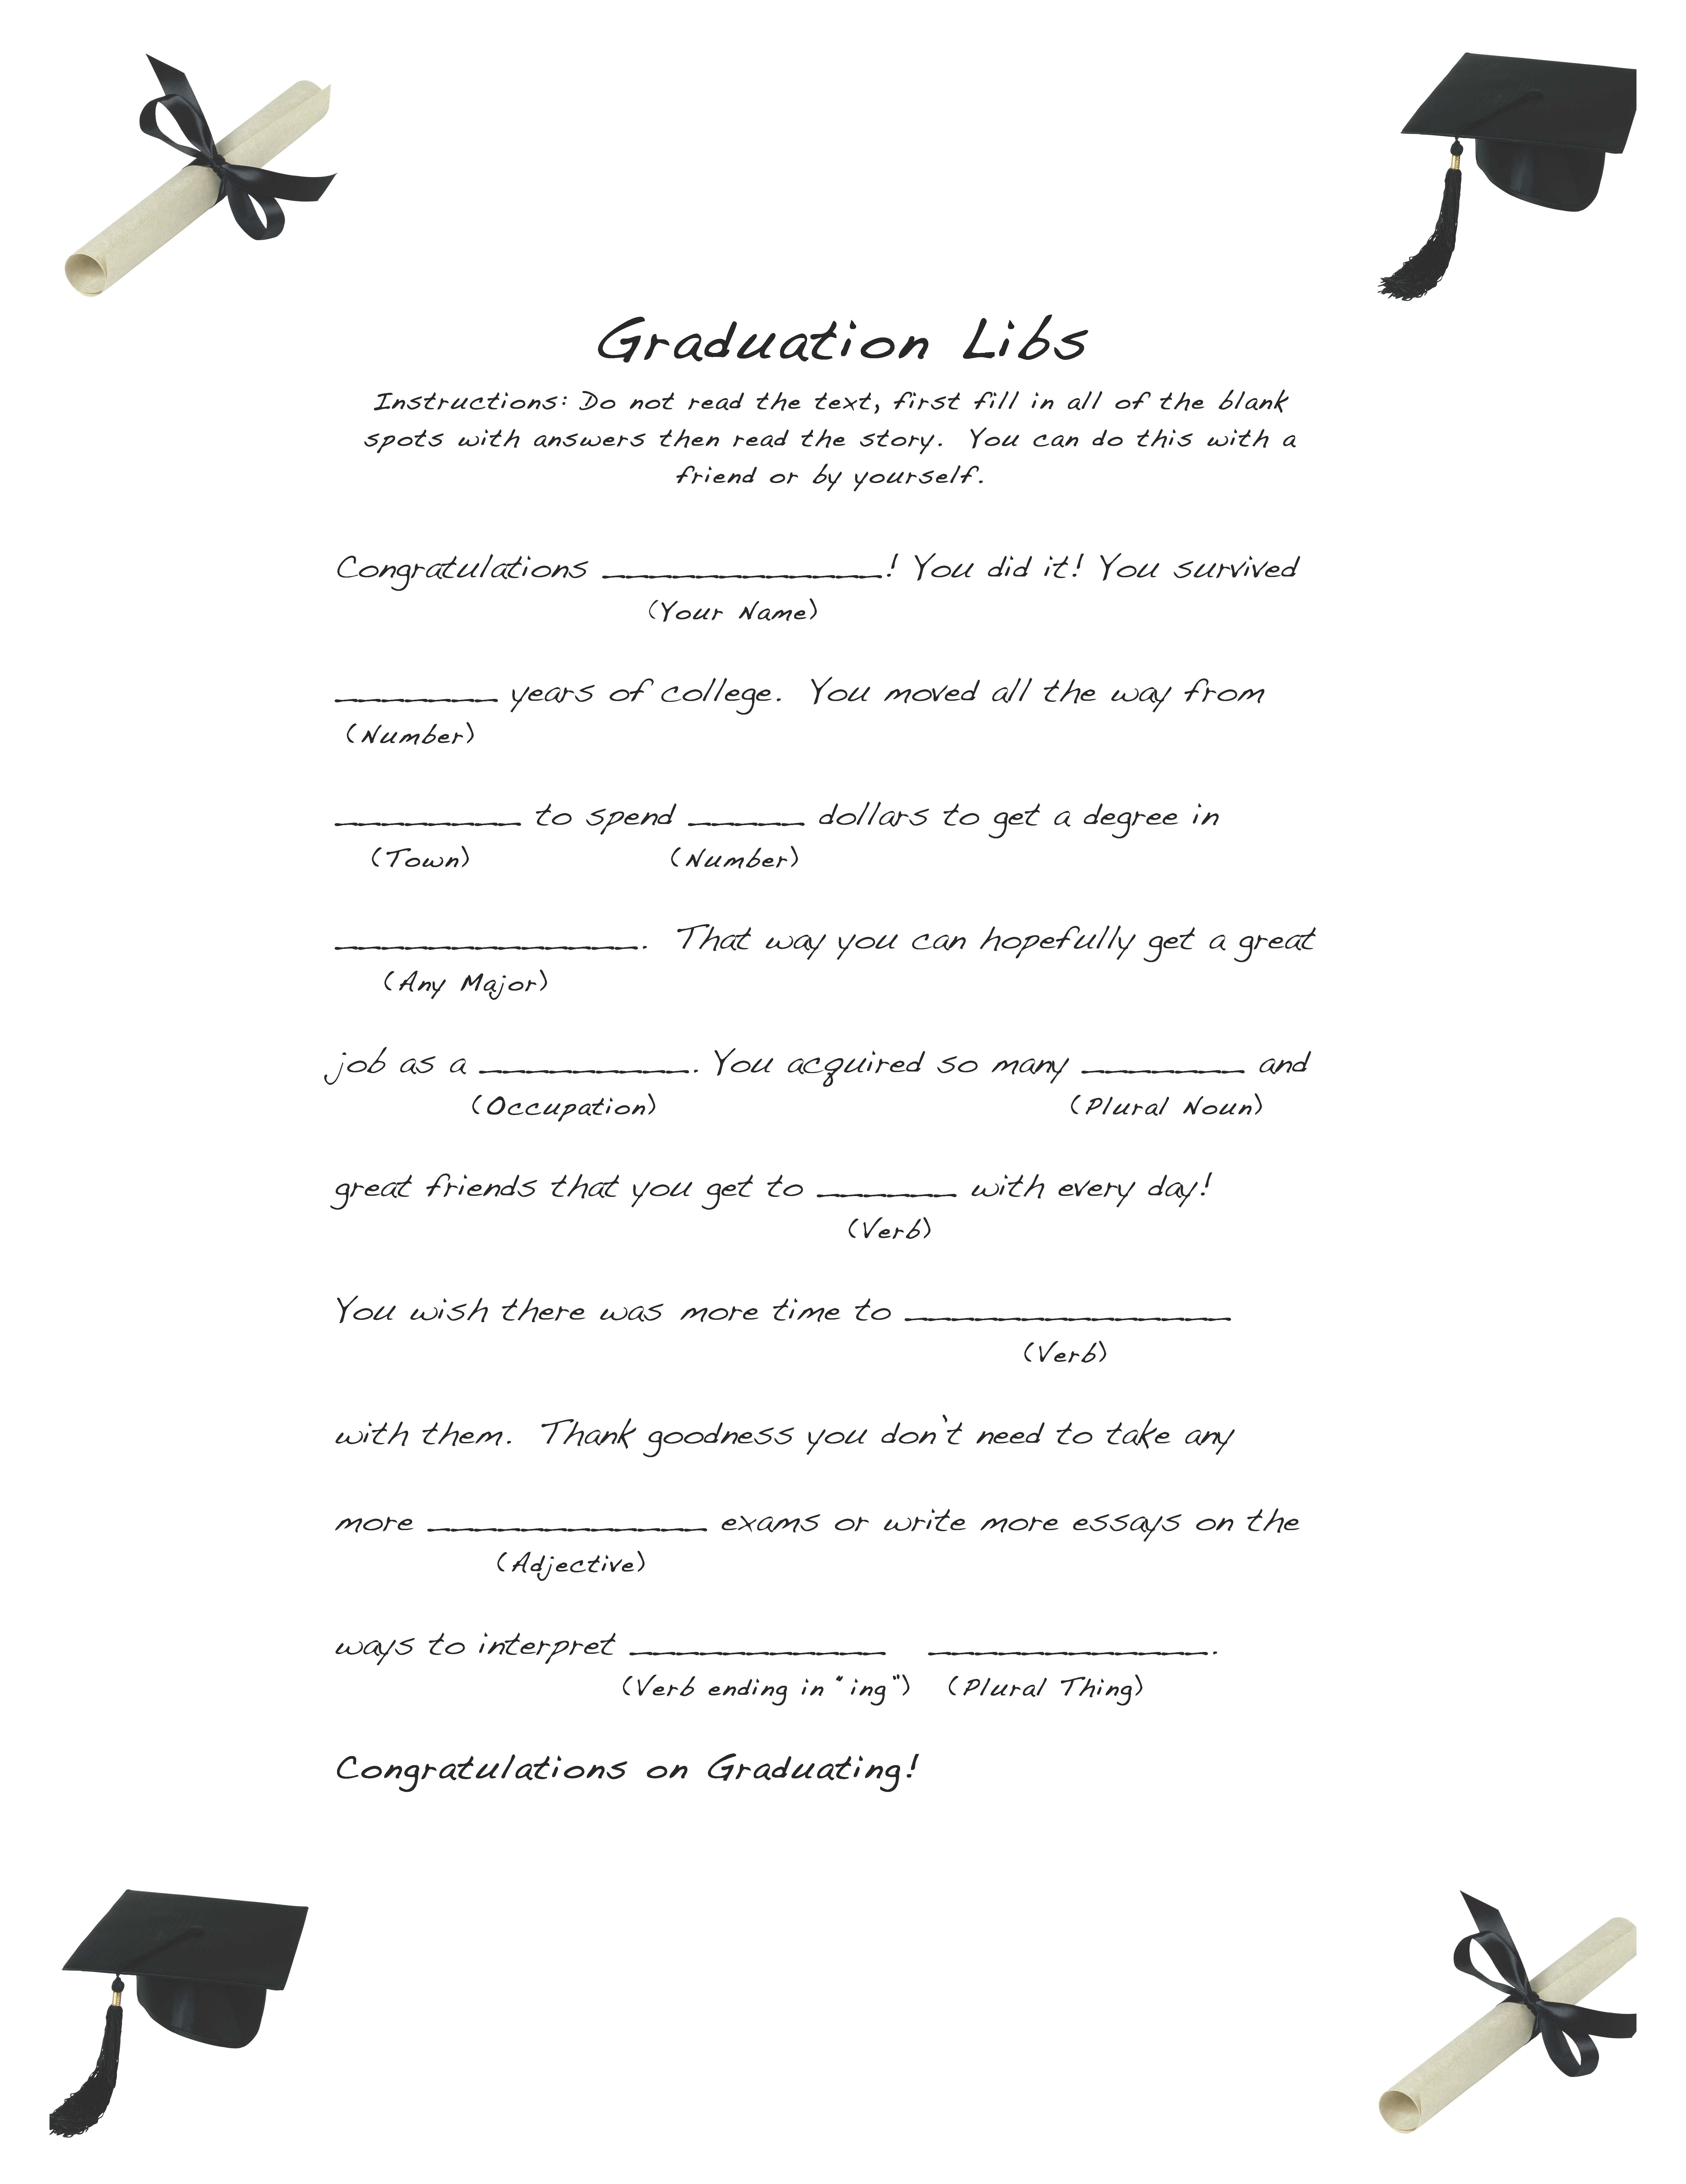 Free And Easy Graduation Libs – Easy Event Ideas - Free Printable Graduation Party Games